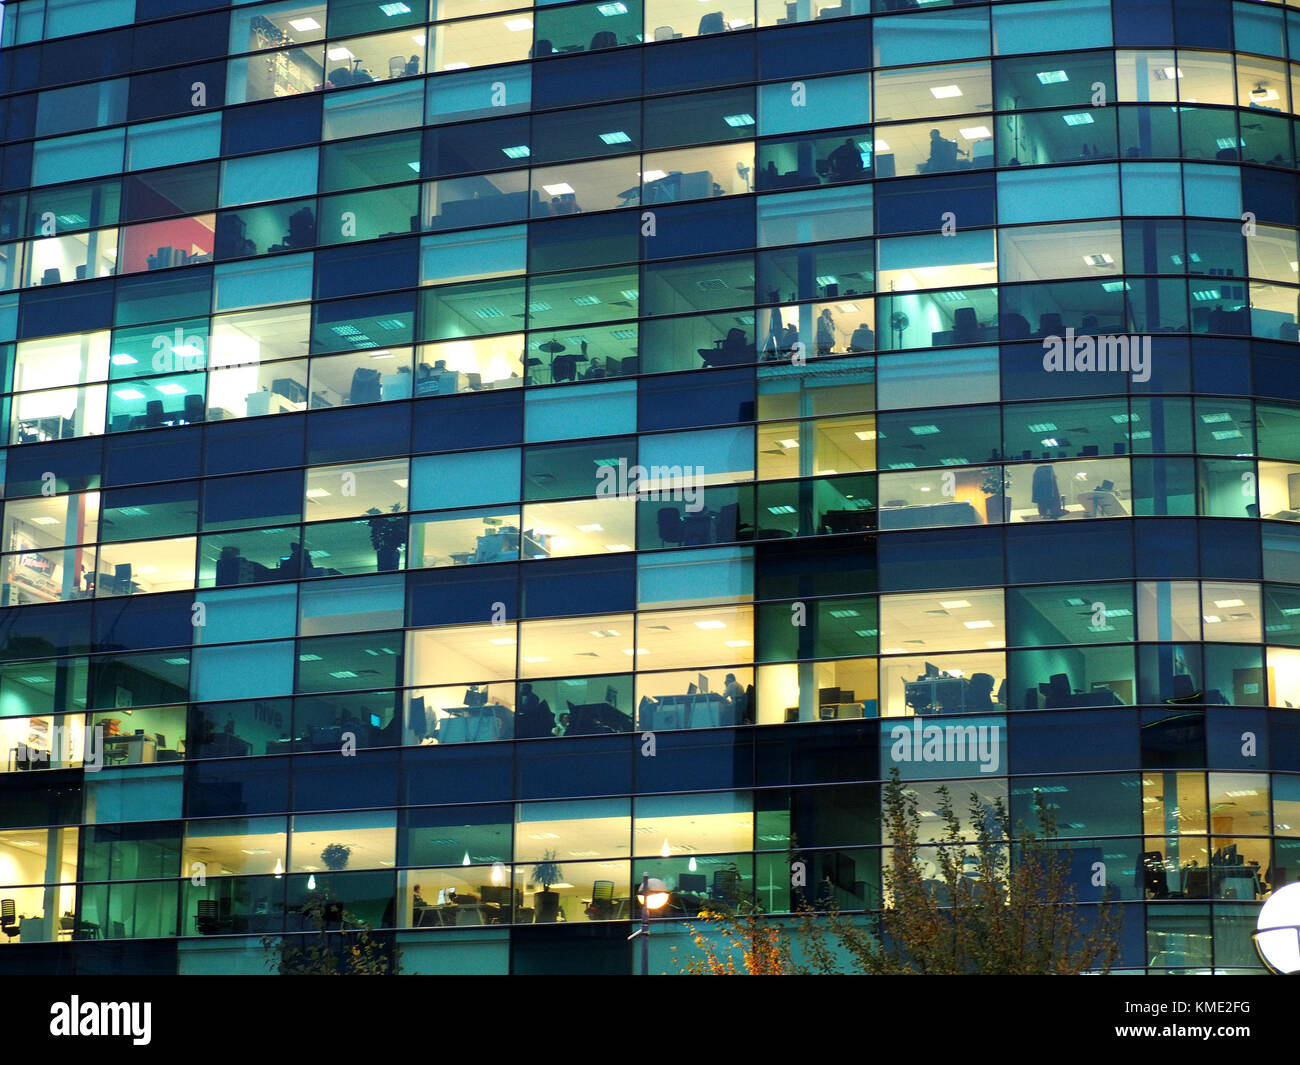 Last Few Office Workers At Dusk In Illuminated Offices In